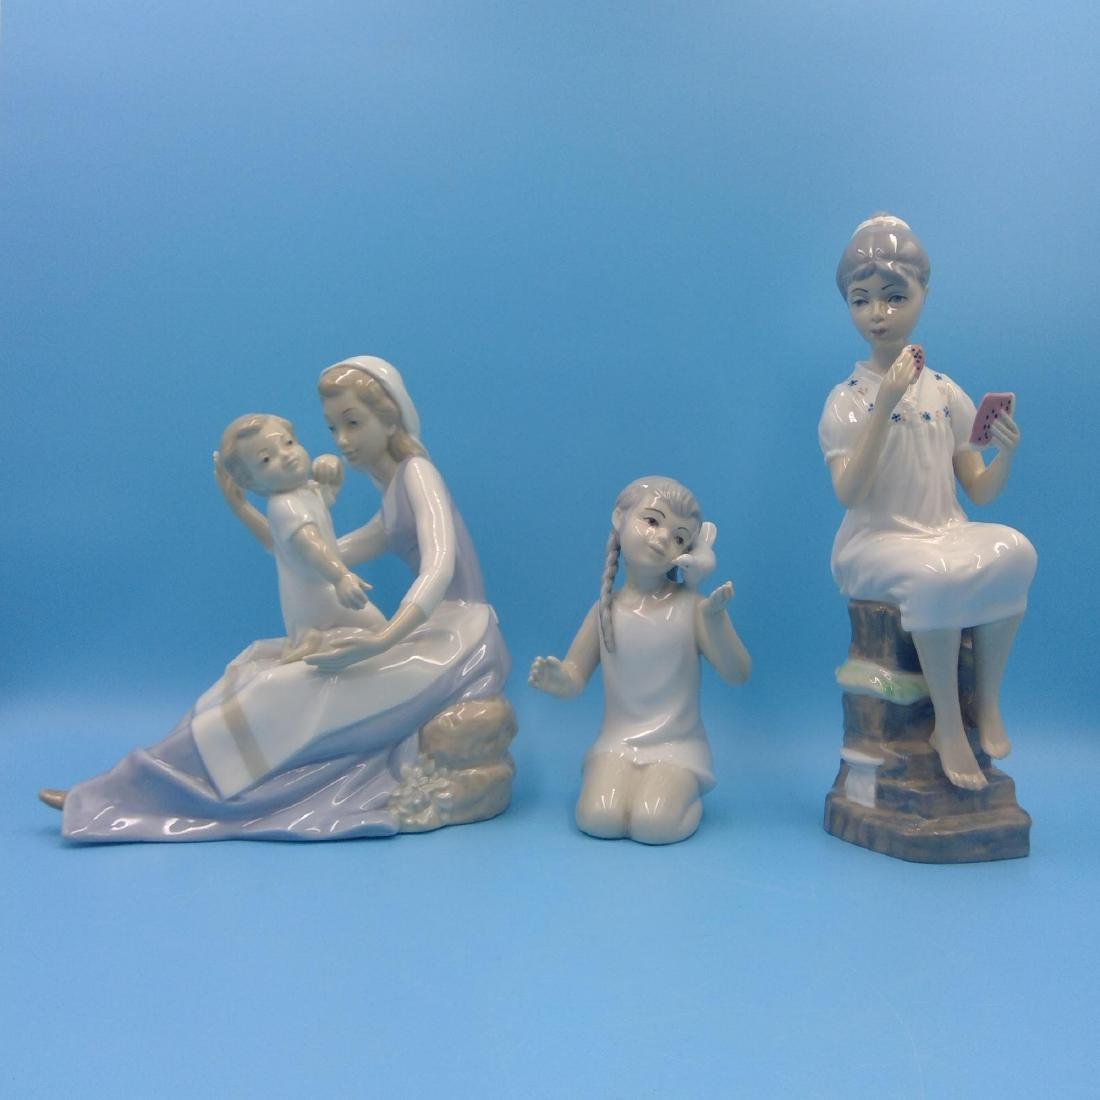 GROUP OF 3 SPANISH PORCELAIN FIGURINES